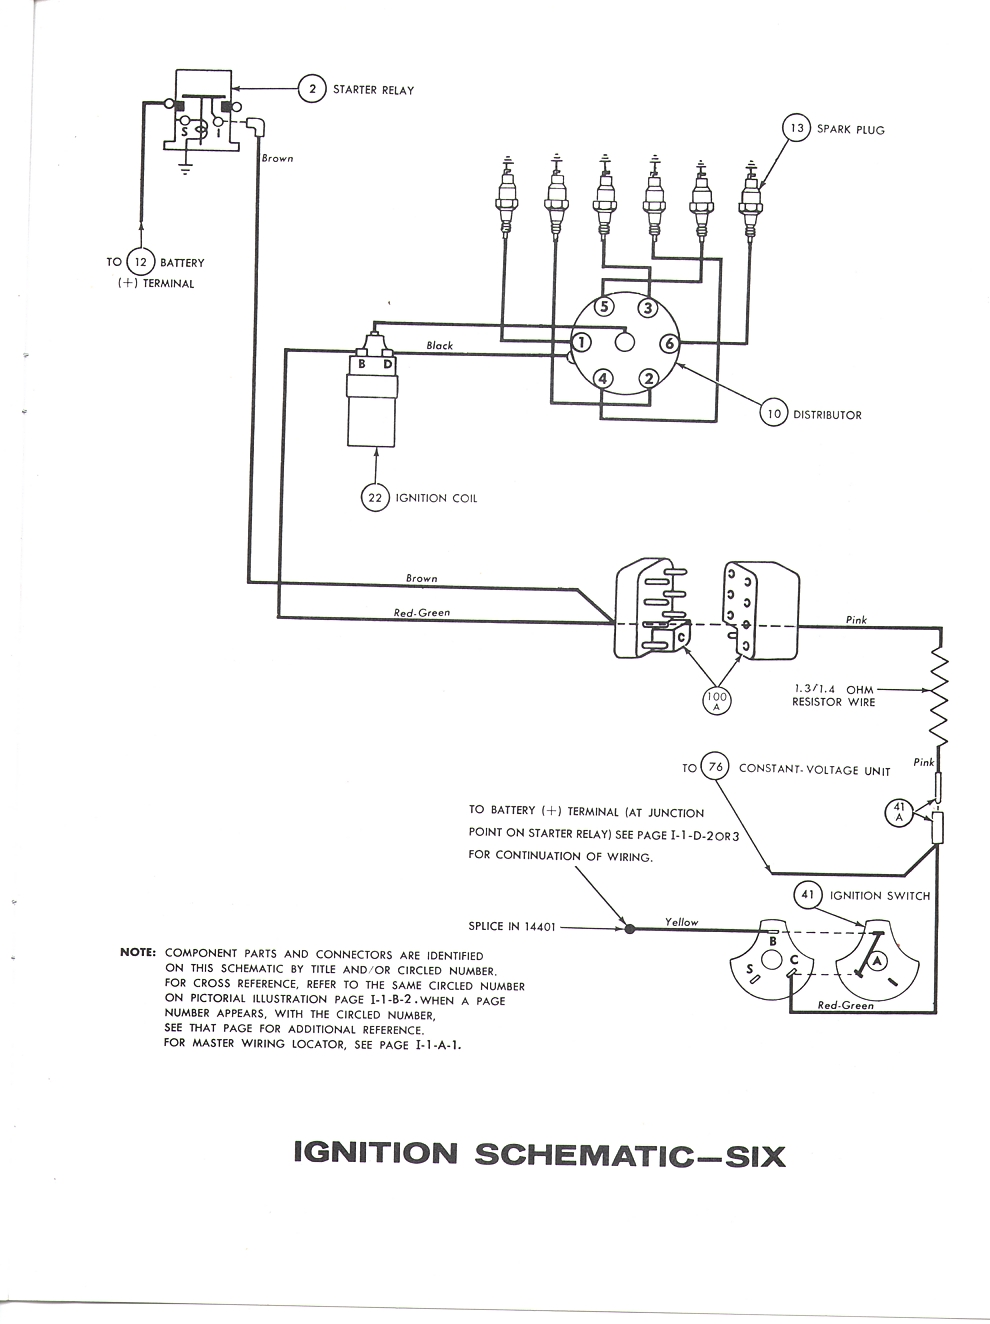 Ba Falcon Starter Wiring Diagram Find Wiring Diagram \u2022 1966 Mustang  Door Diagram 1965 Mustang Distributor Wiring Diagram